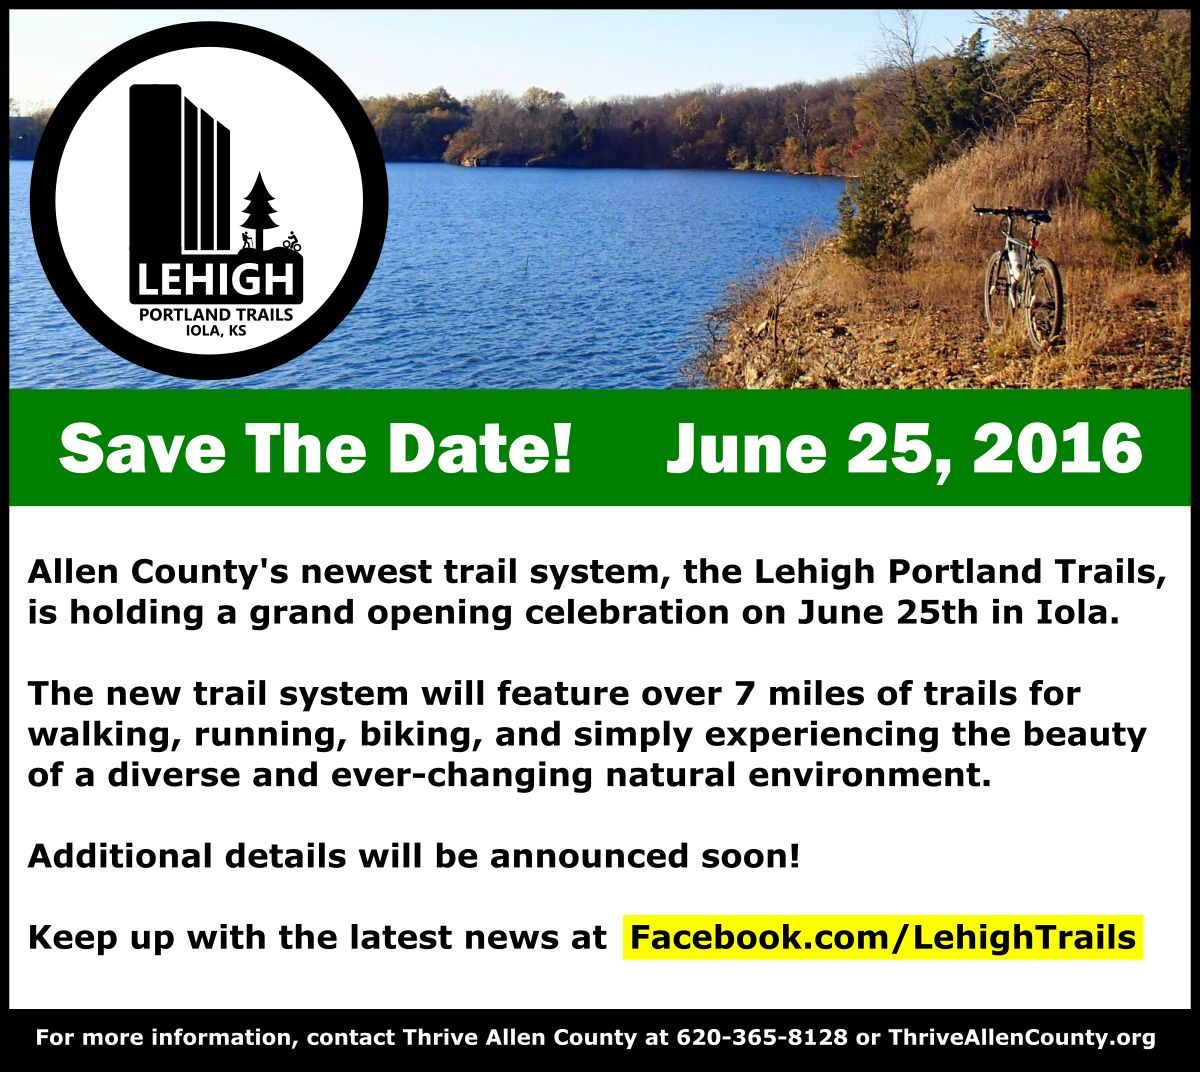 Lehigh Portland Trails Grand Opening June 25